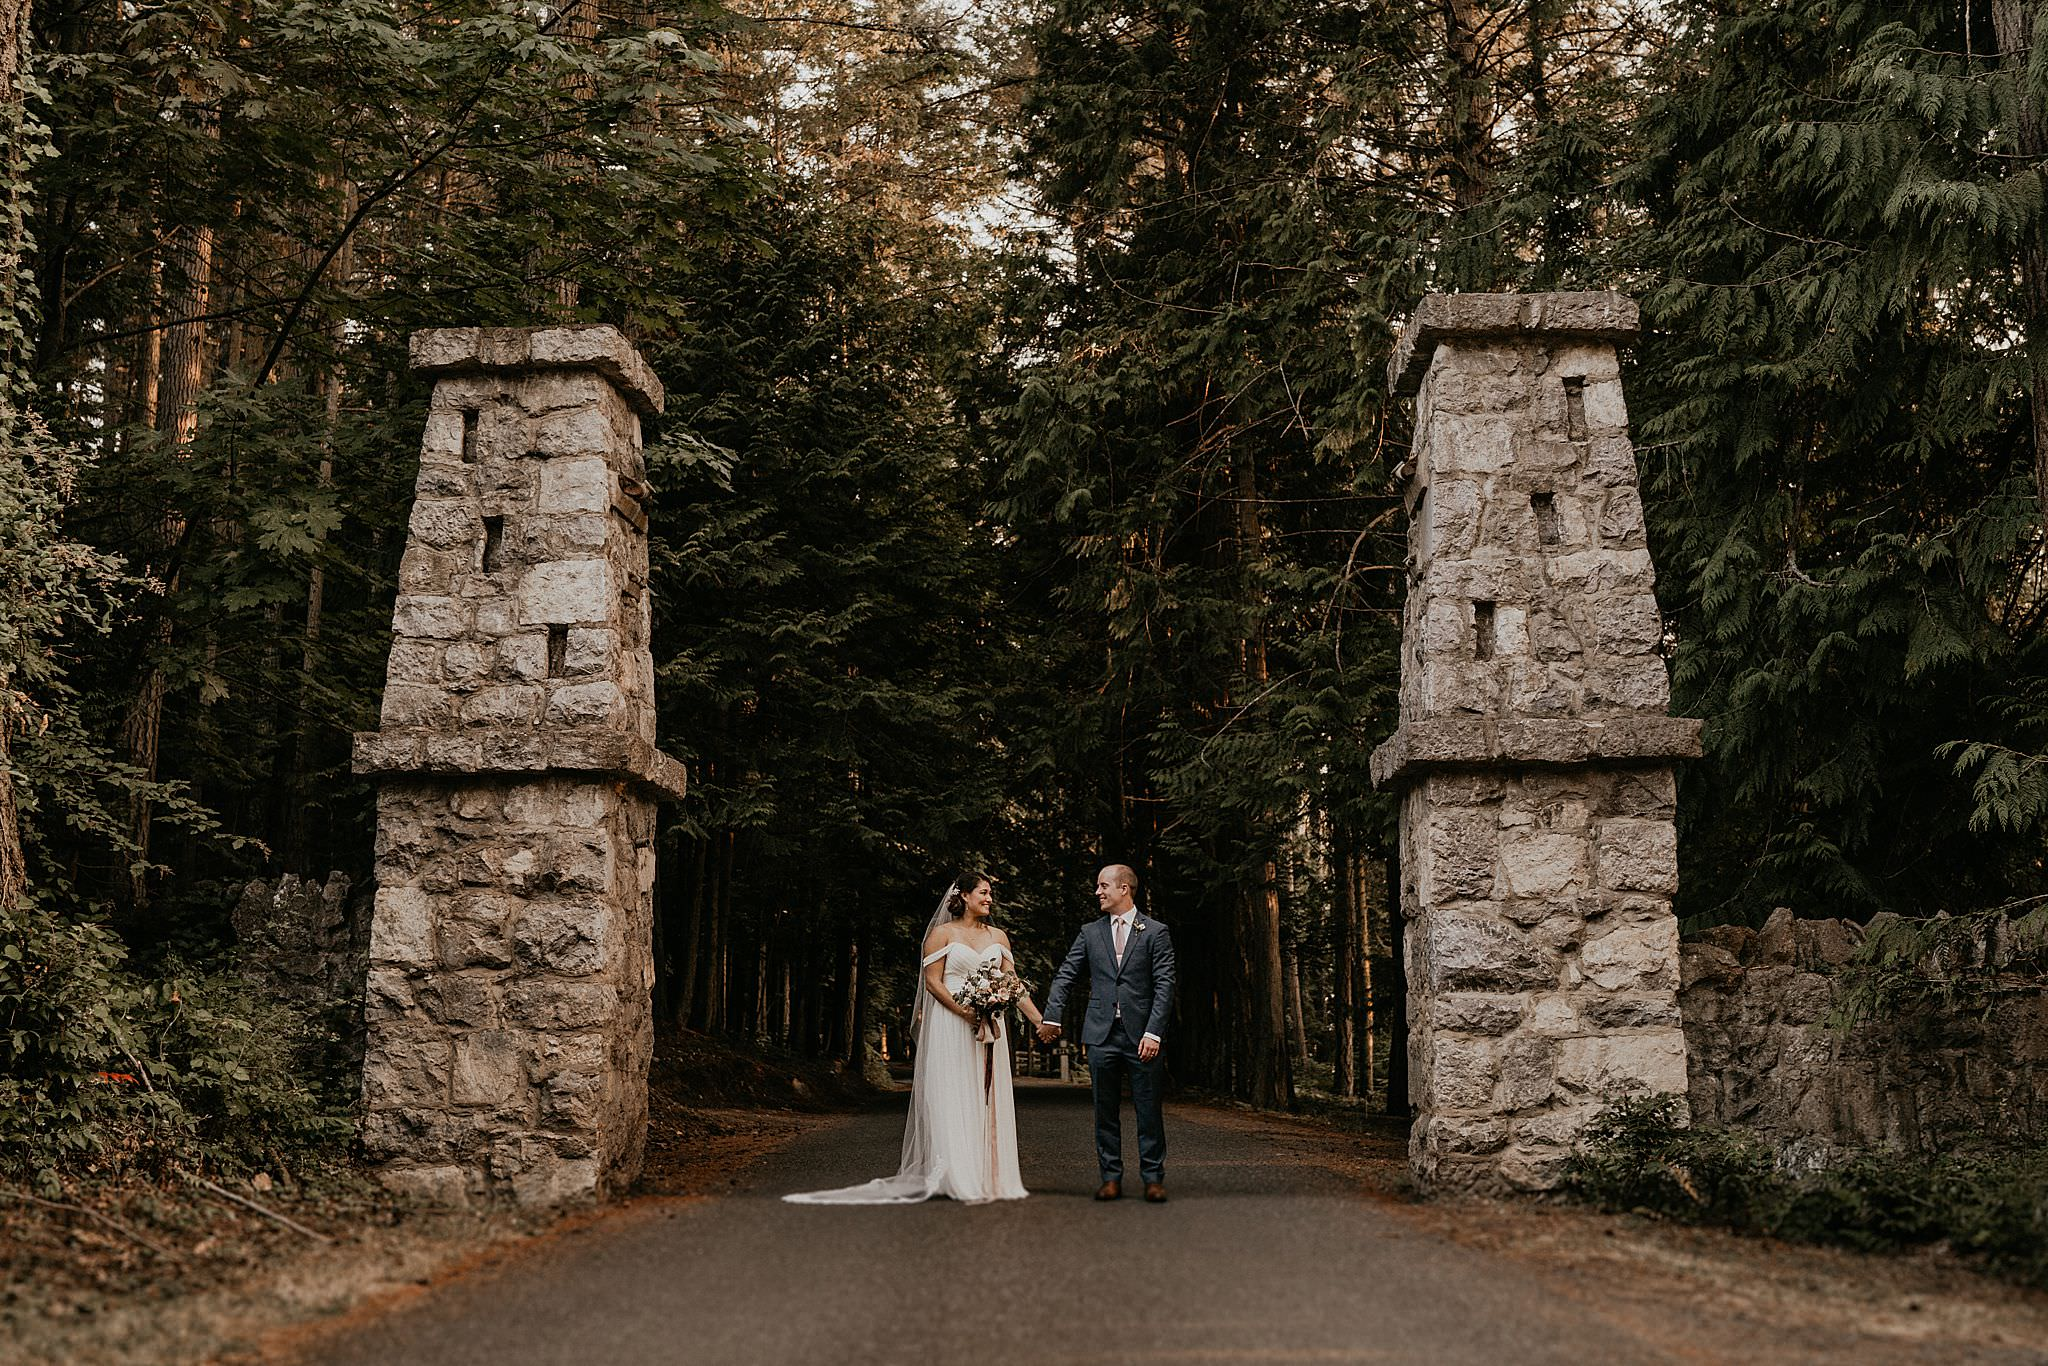 Bride and groom at Roche Harbor resort wedding for sunset photos